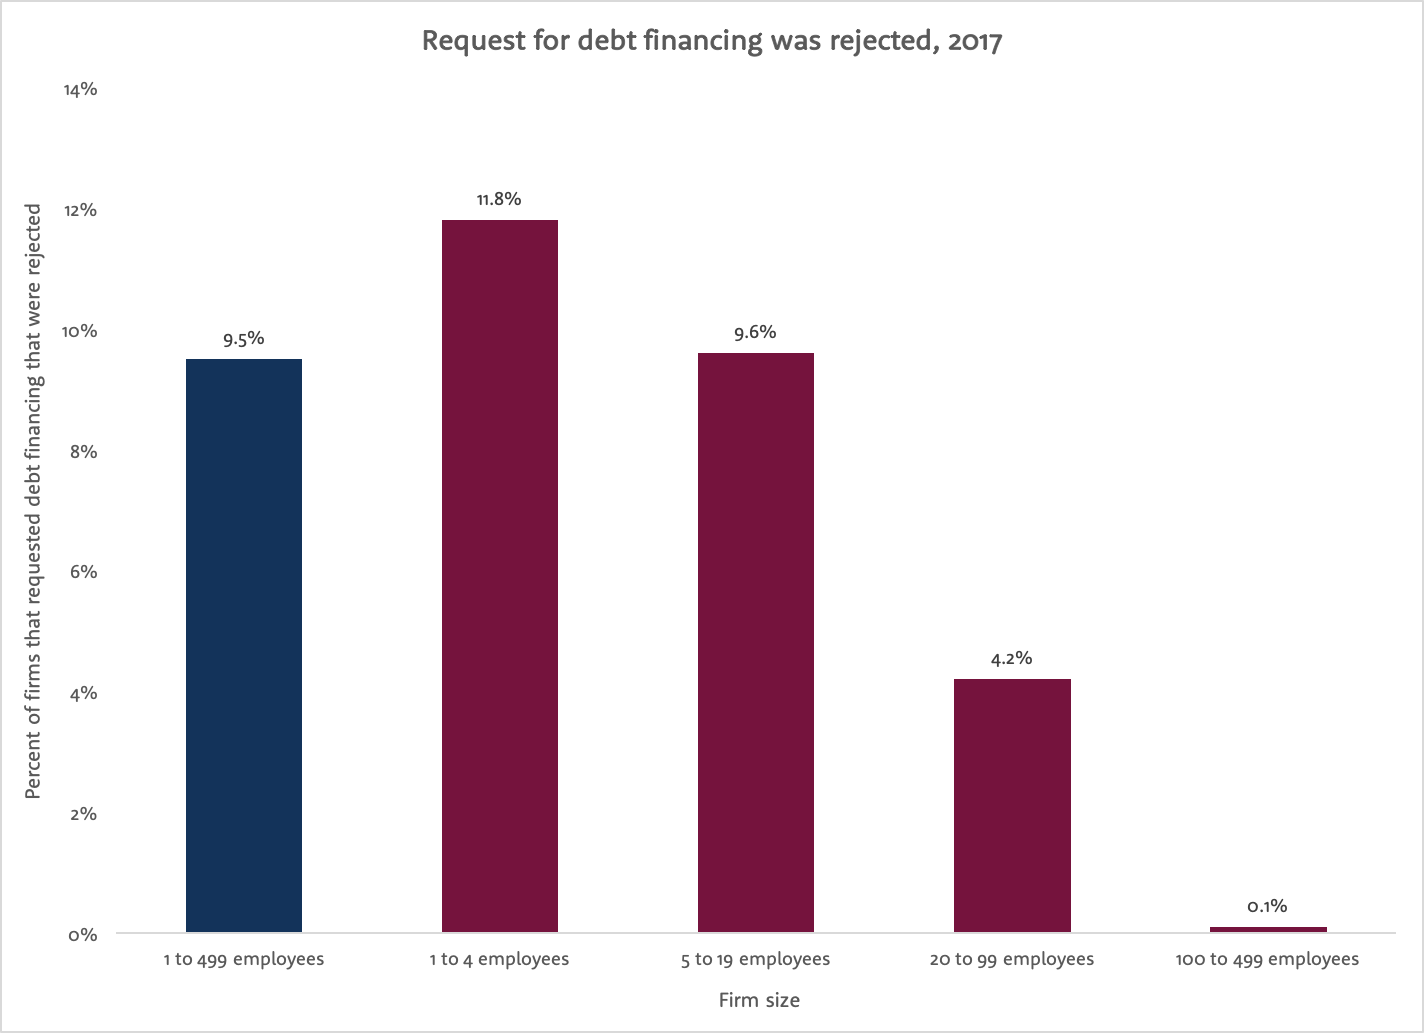 Bar graph with percent of firms that requested debt financing and were rejected on y-axis, and firm size (by employees) on x-axis.